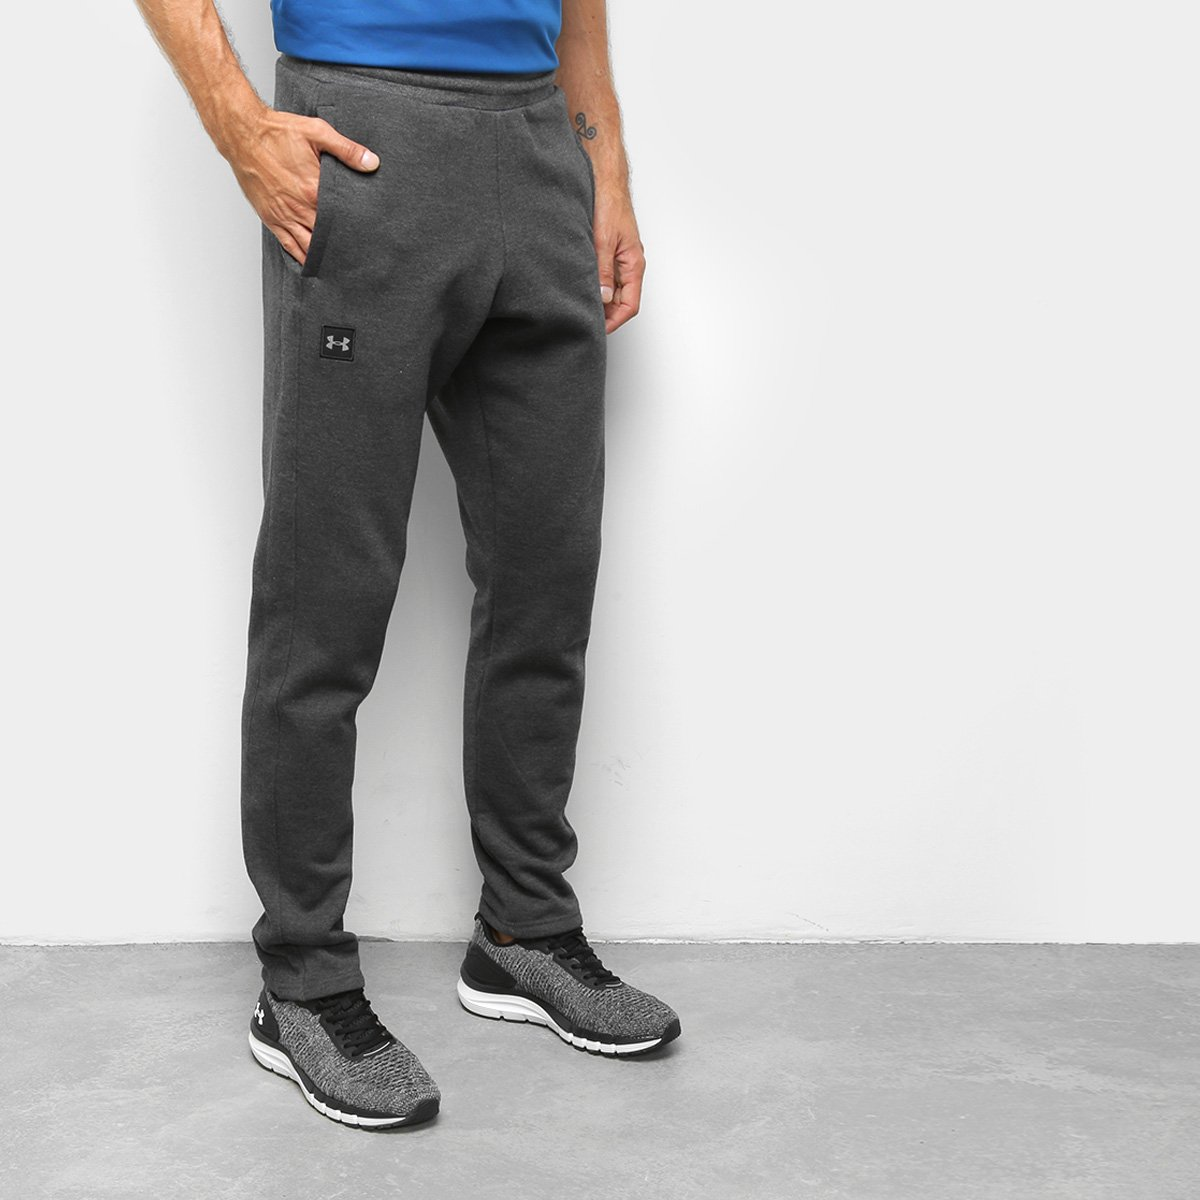 Calça Under Armour Fleece Masculina